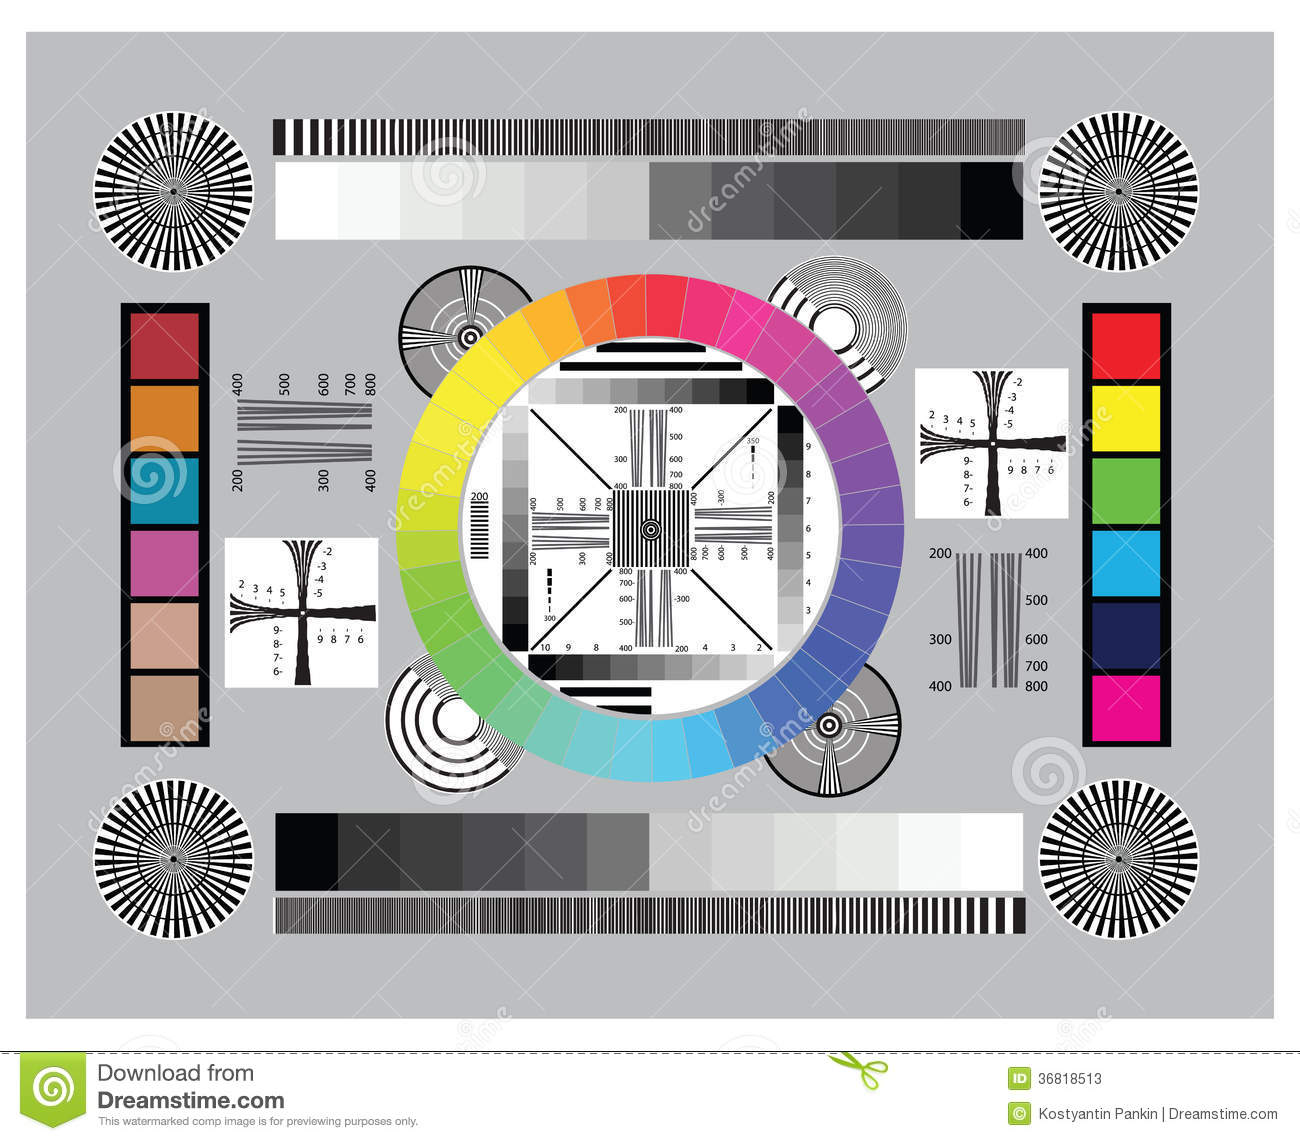 Lens Test Chart Stock Photos - Image: 36818513